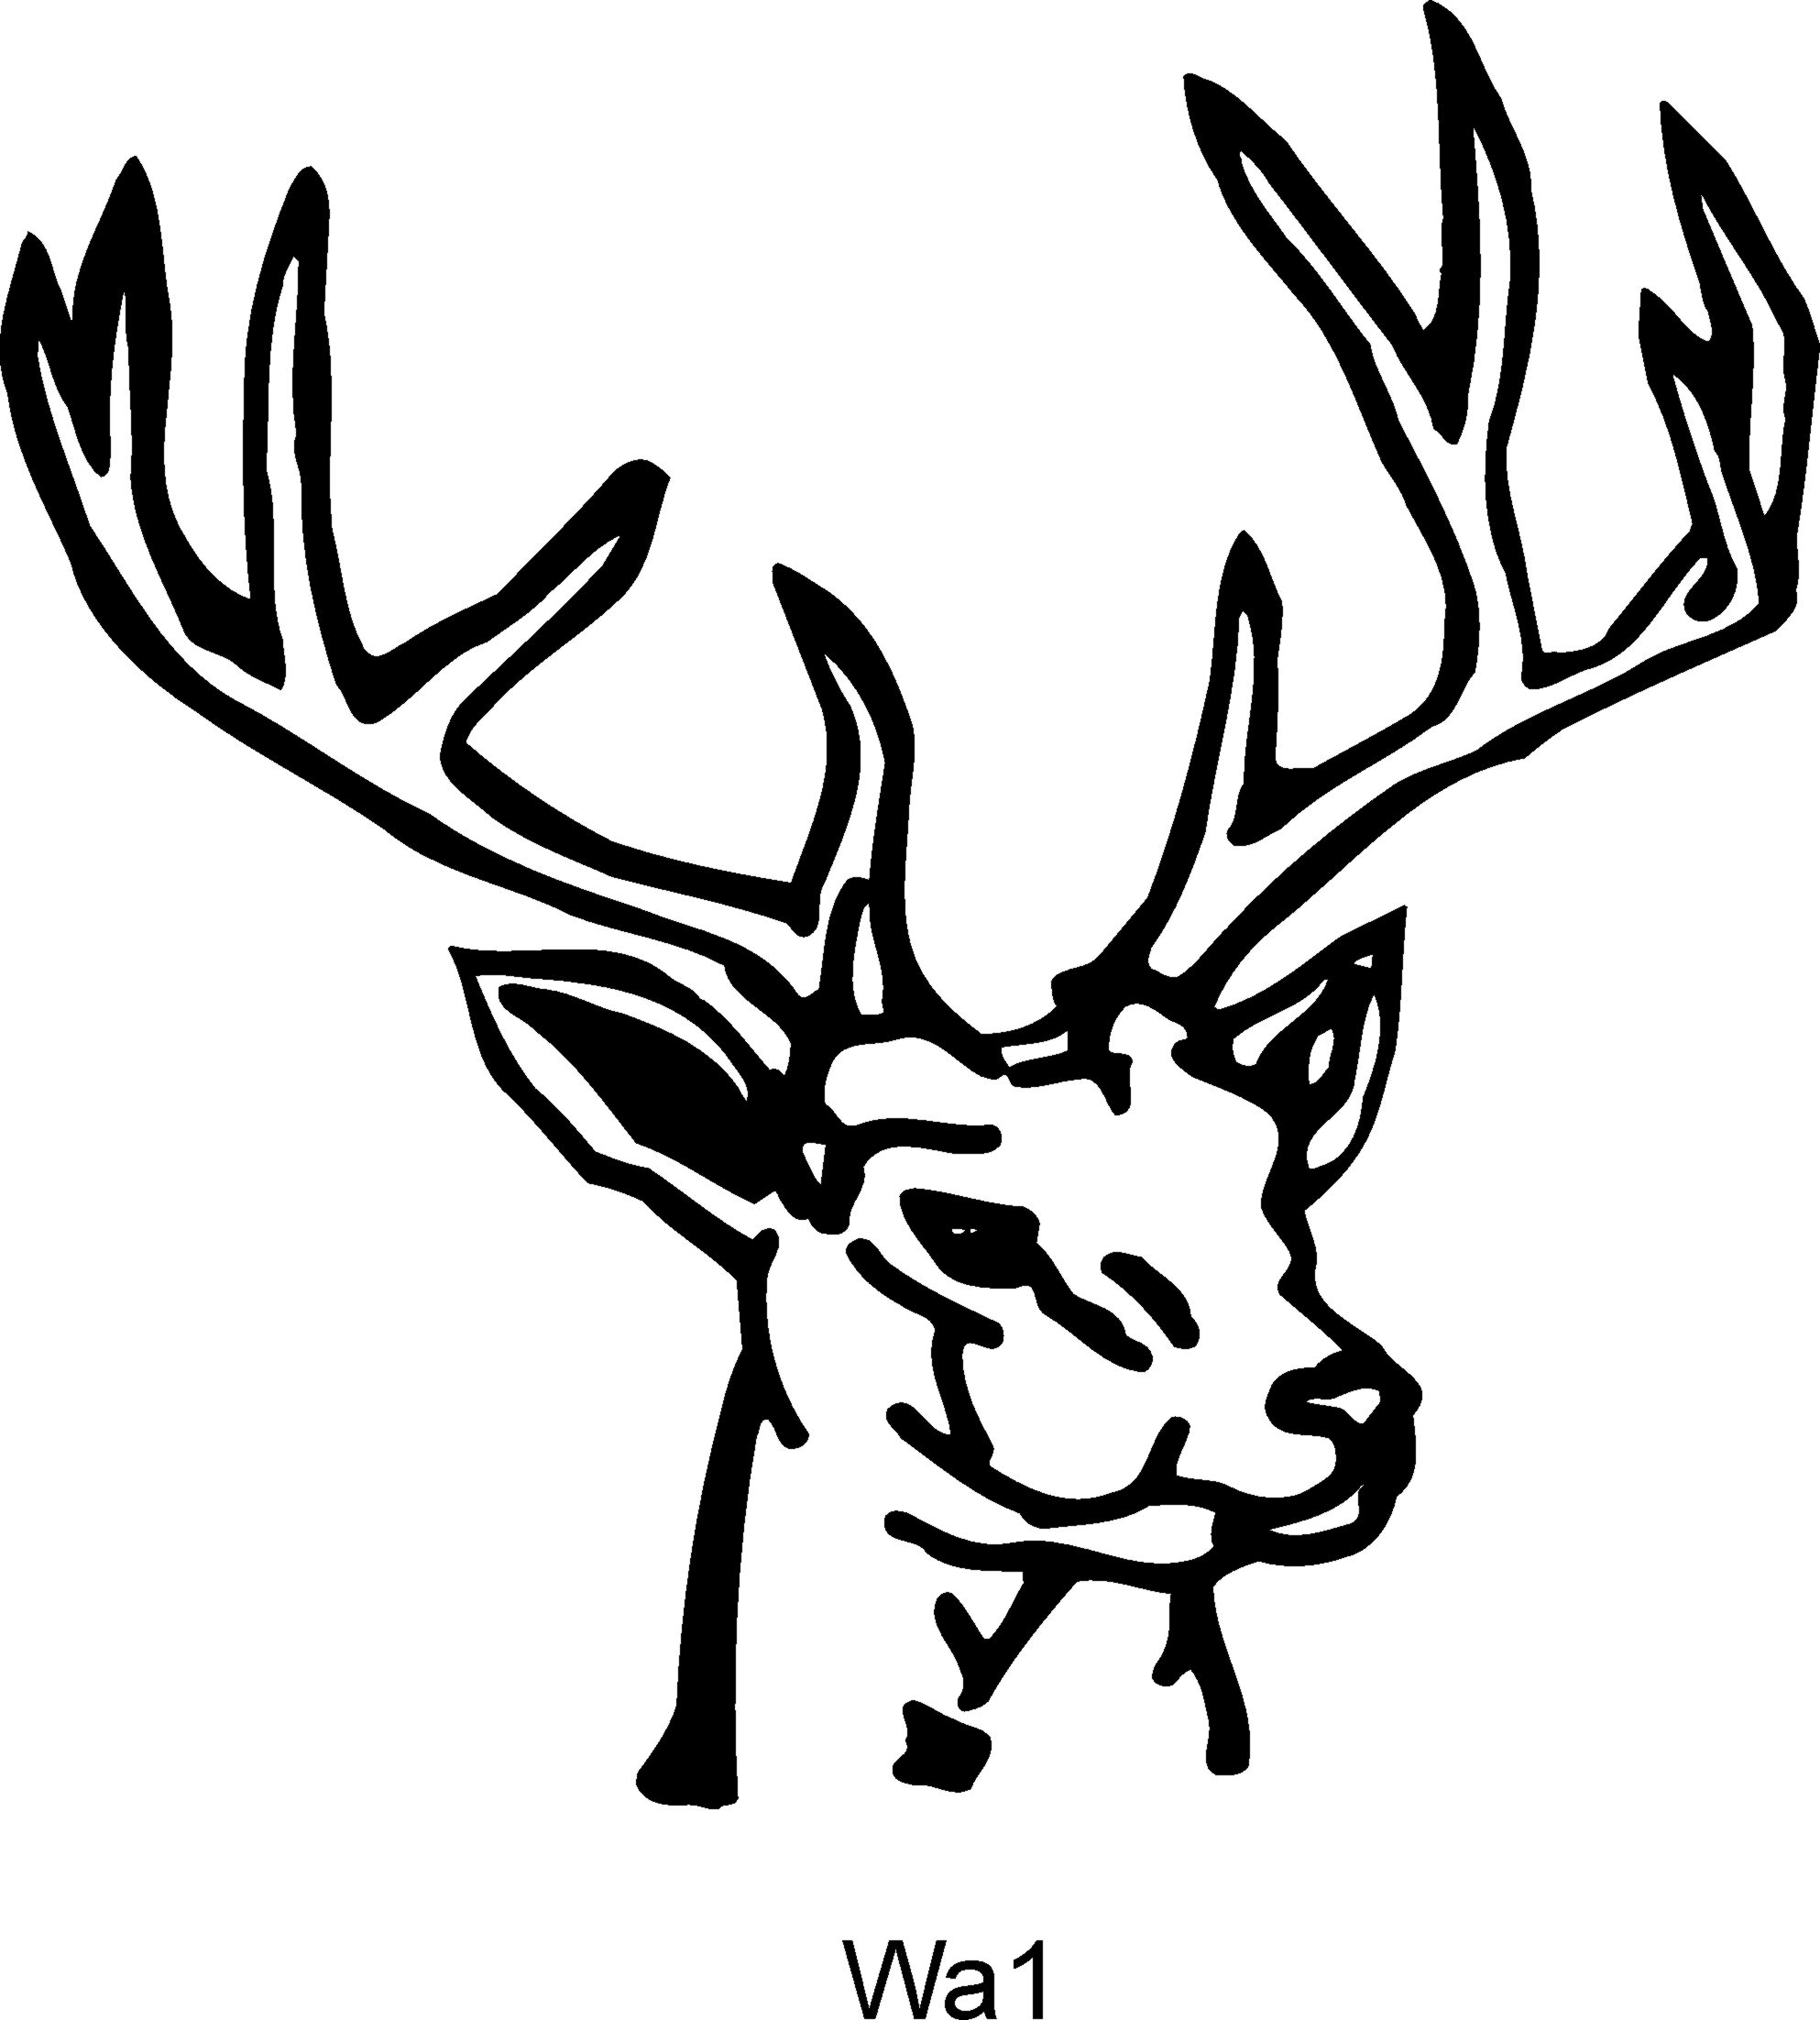 Stag Head Drawing - ClipArt Best